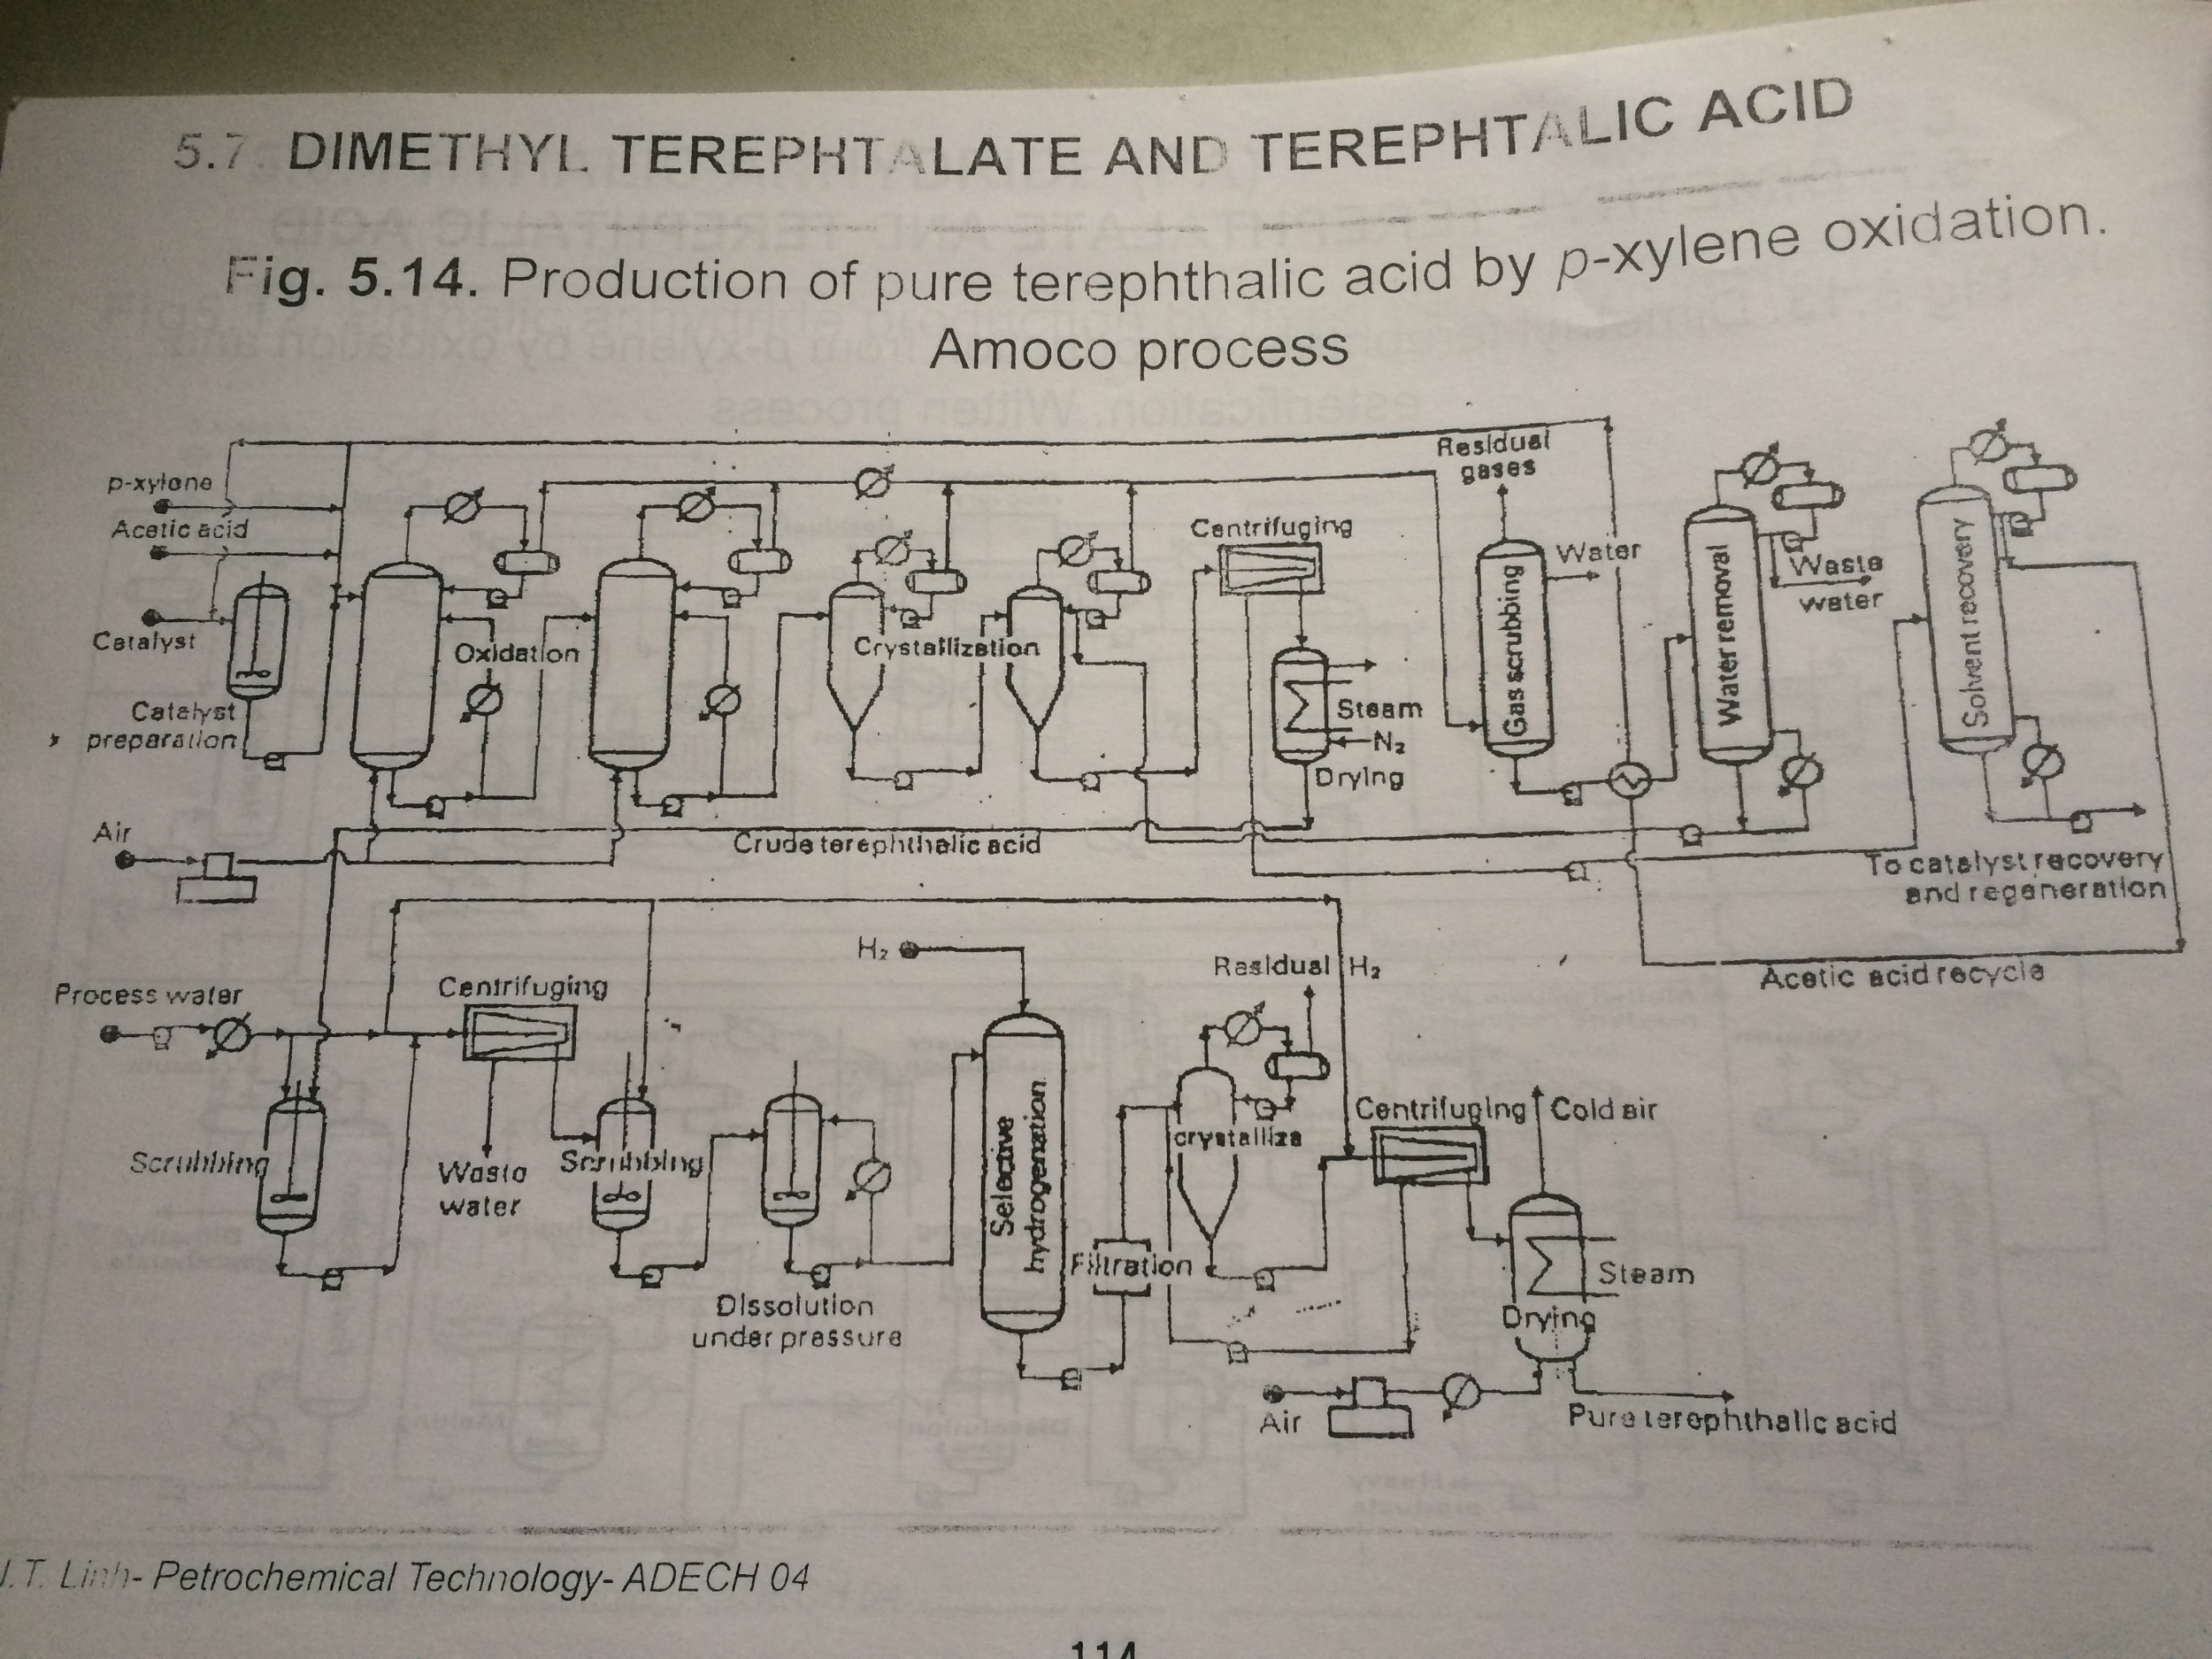 Interpretation of flow diagram of terephthalic aci Thanks you all!